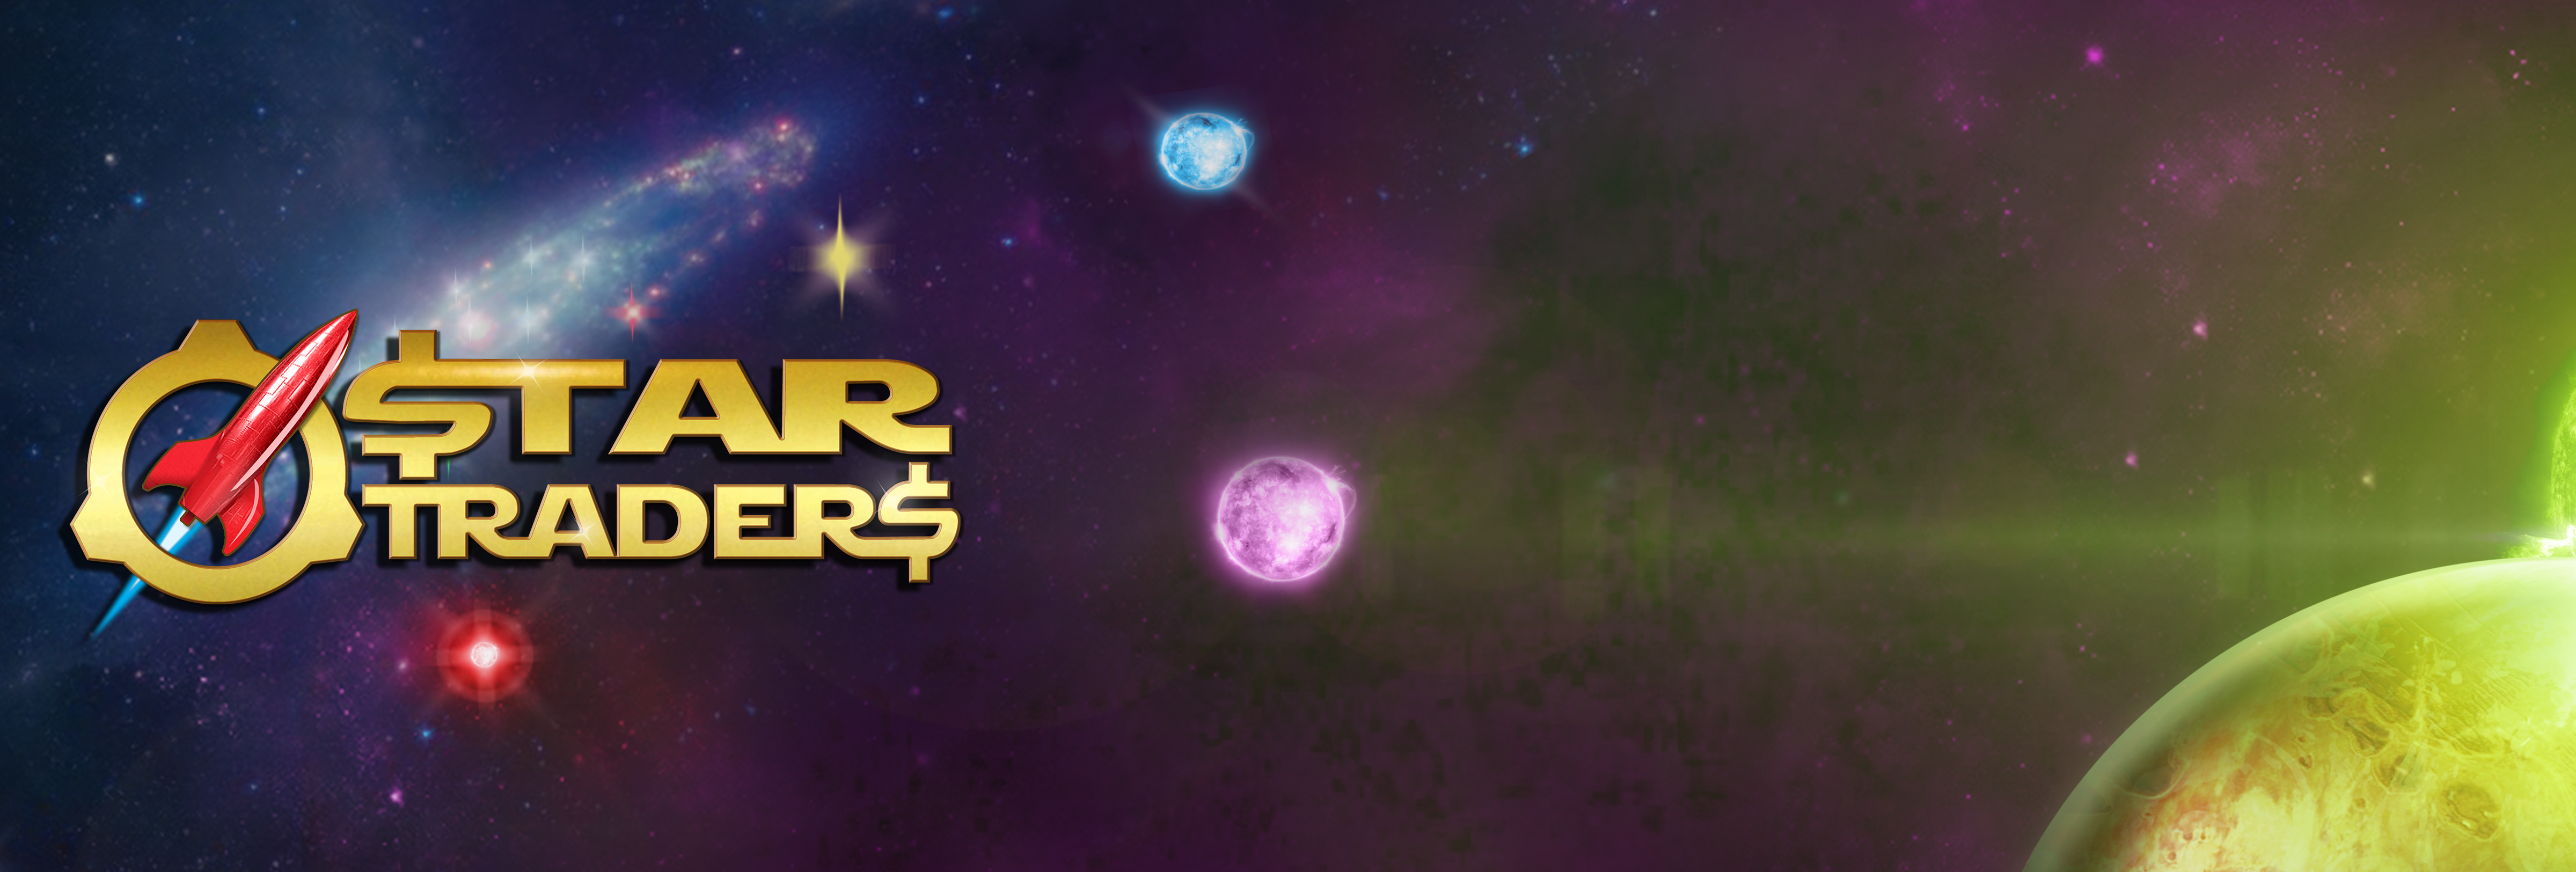 Star Traders Successfully Funded